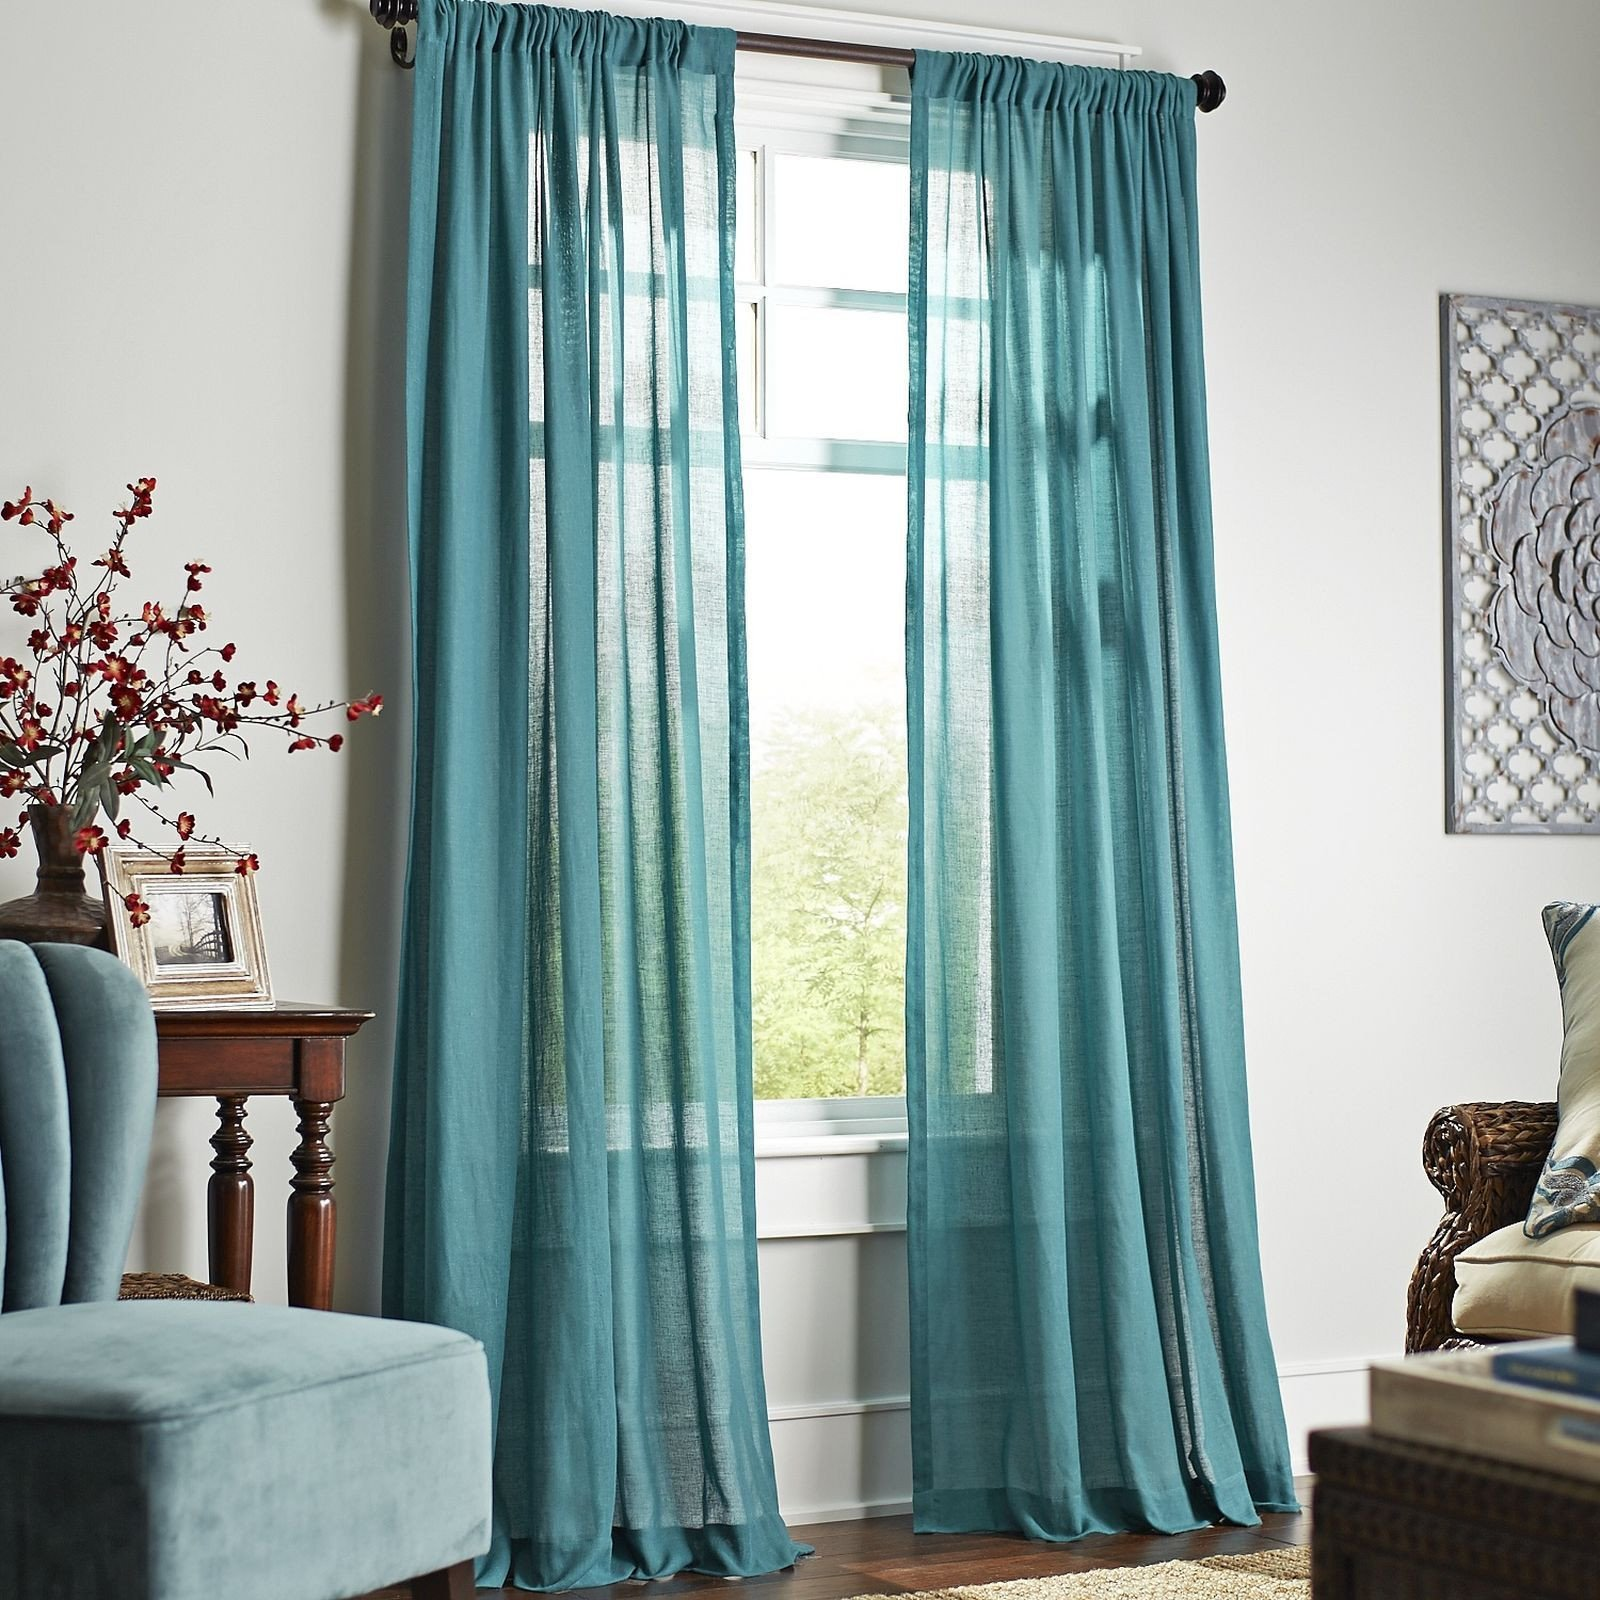 Blue Curtains for Bedroom Best Of Quinn Sheer Curtain Teal Pier 1 Imports